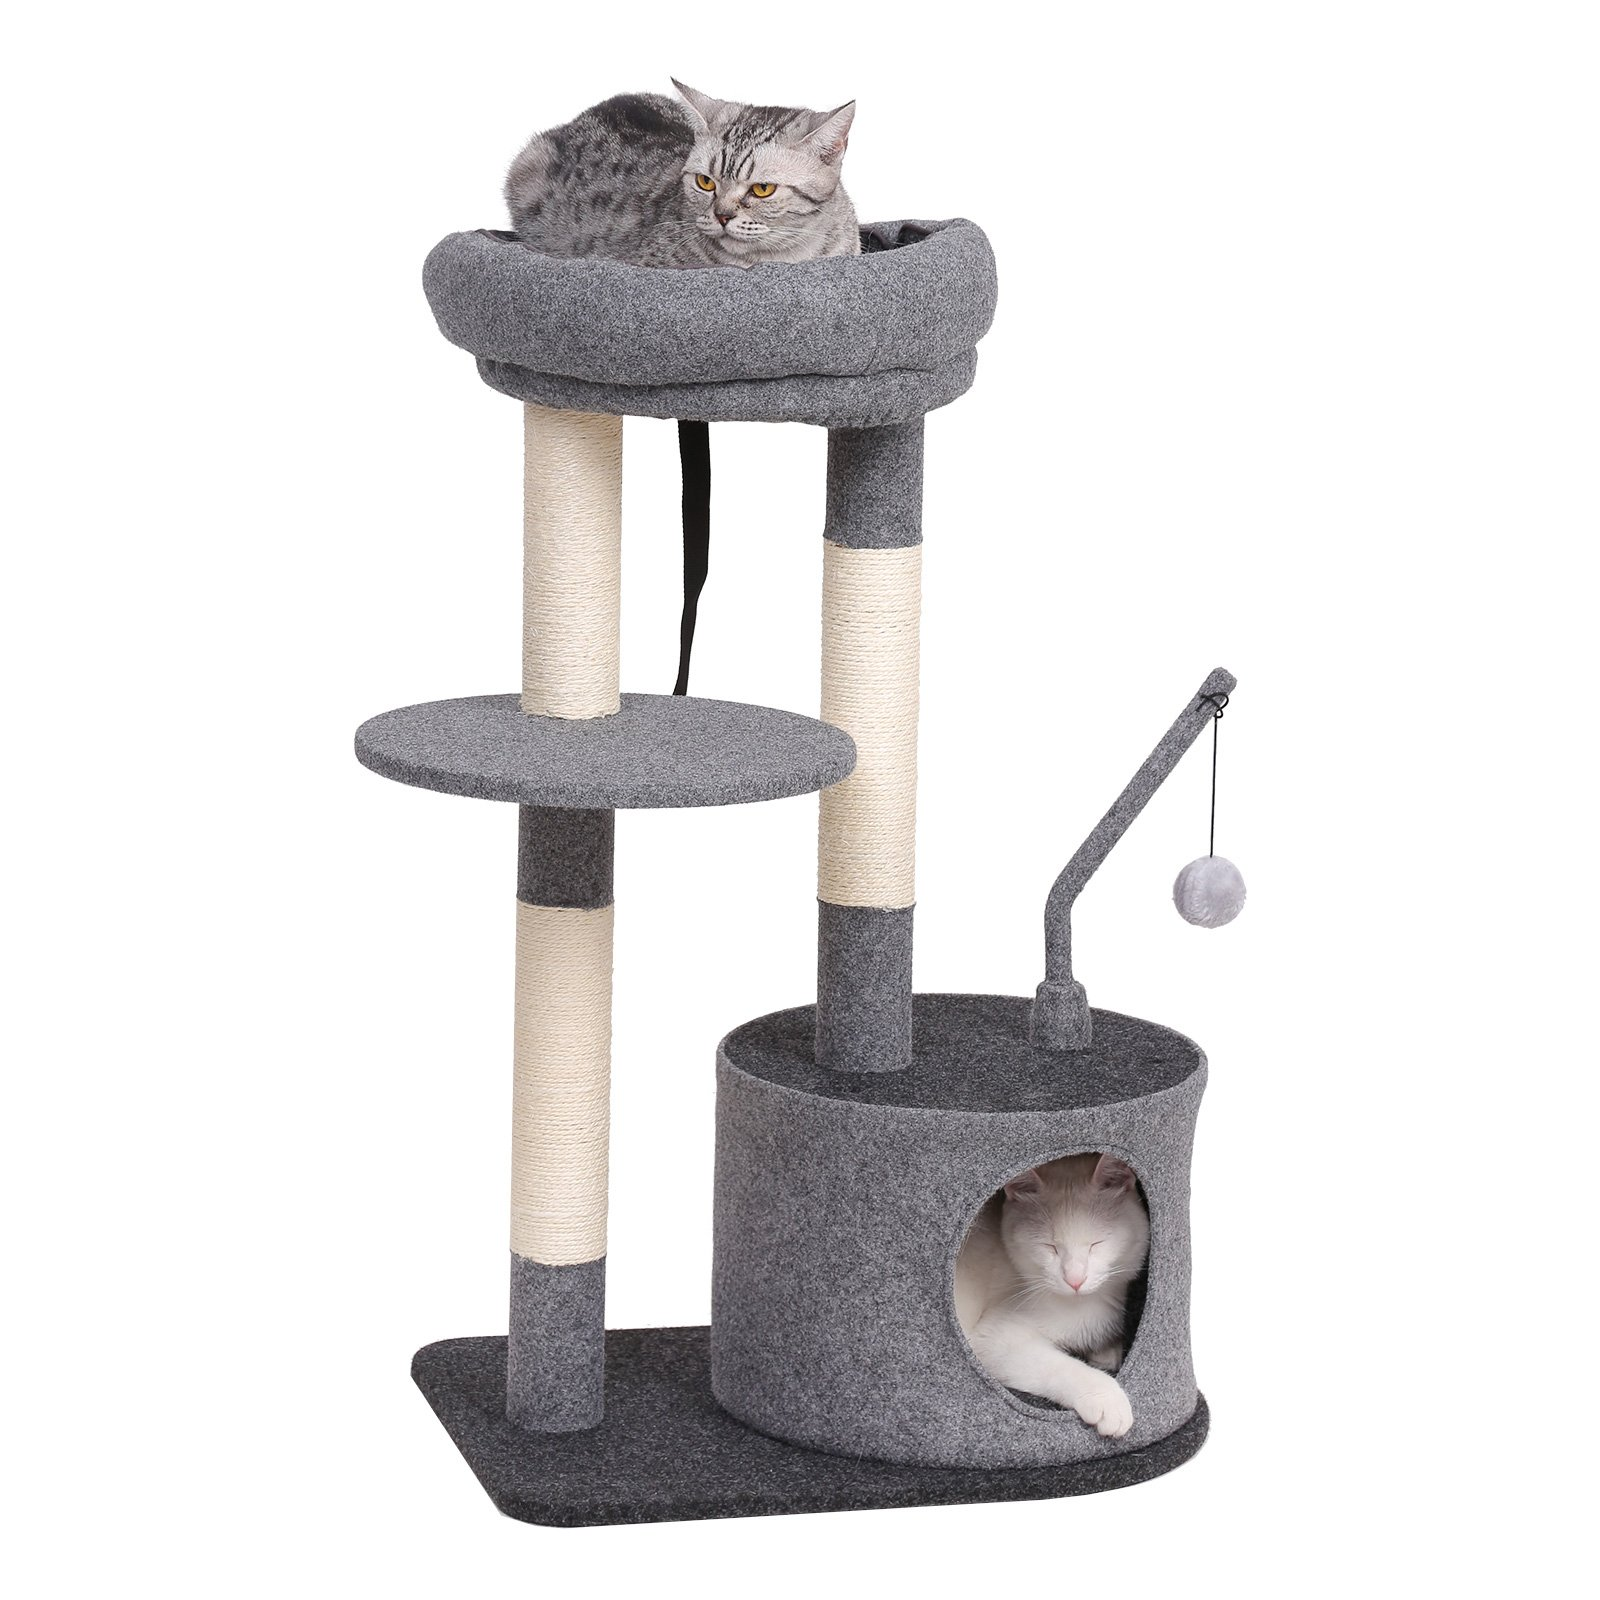 SONGMICS Cat Tree with Sisal-Covered Scratching Posts, Padded Condo and Top Perch, Activity Centre Playhouse Cat Tower Furniture, Felt Surface, Smoky Grey UPCT62G